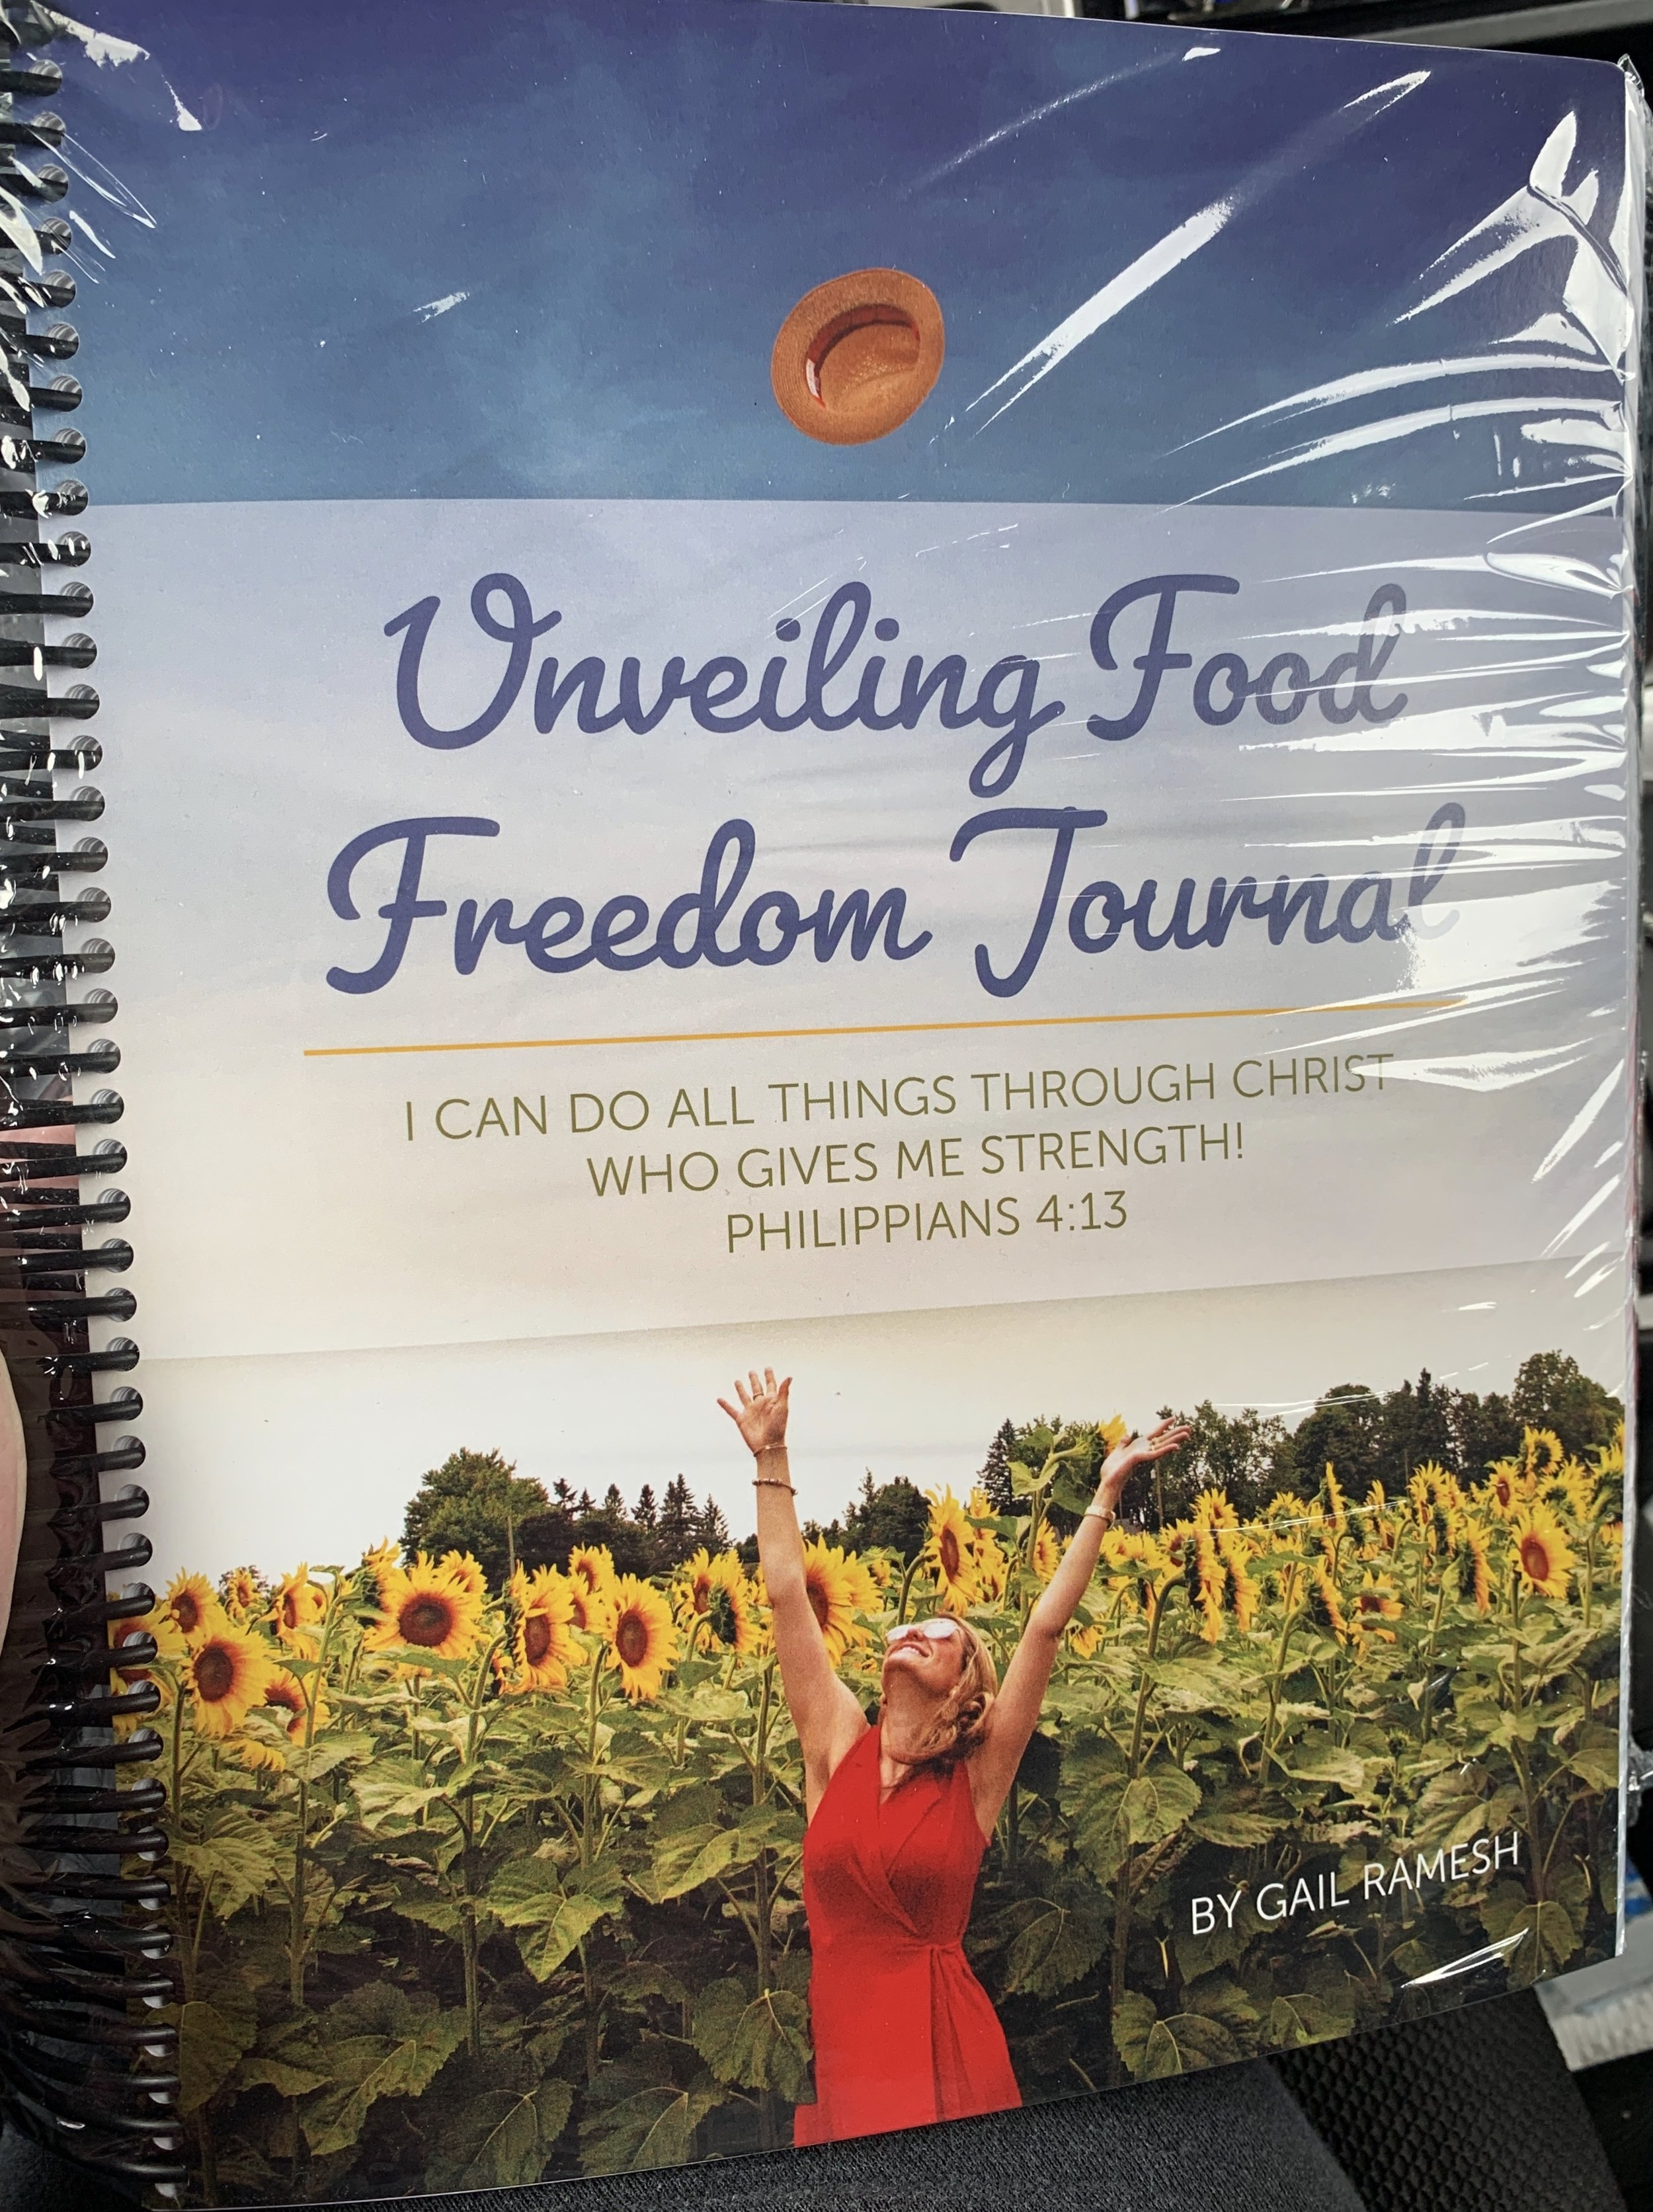 Unveiled Food Freedom Journal